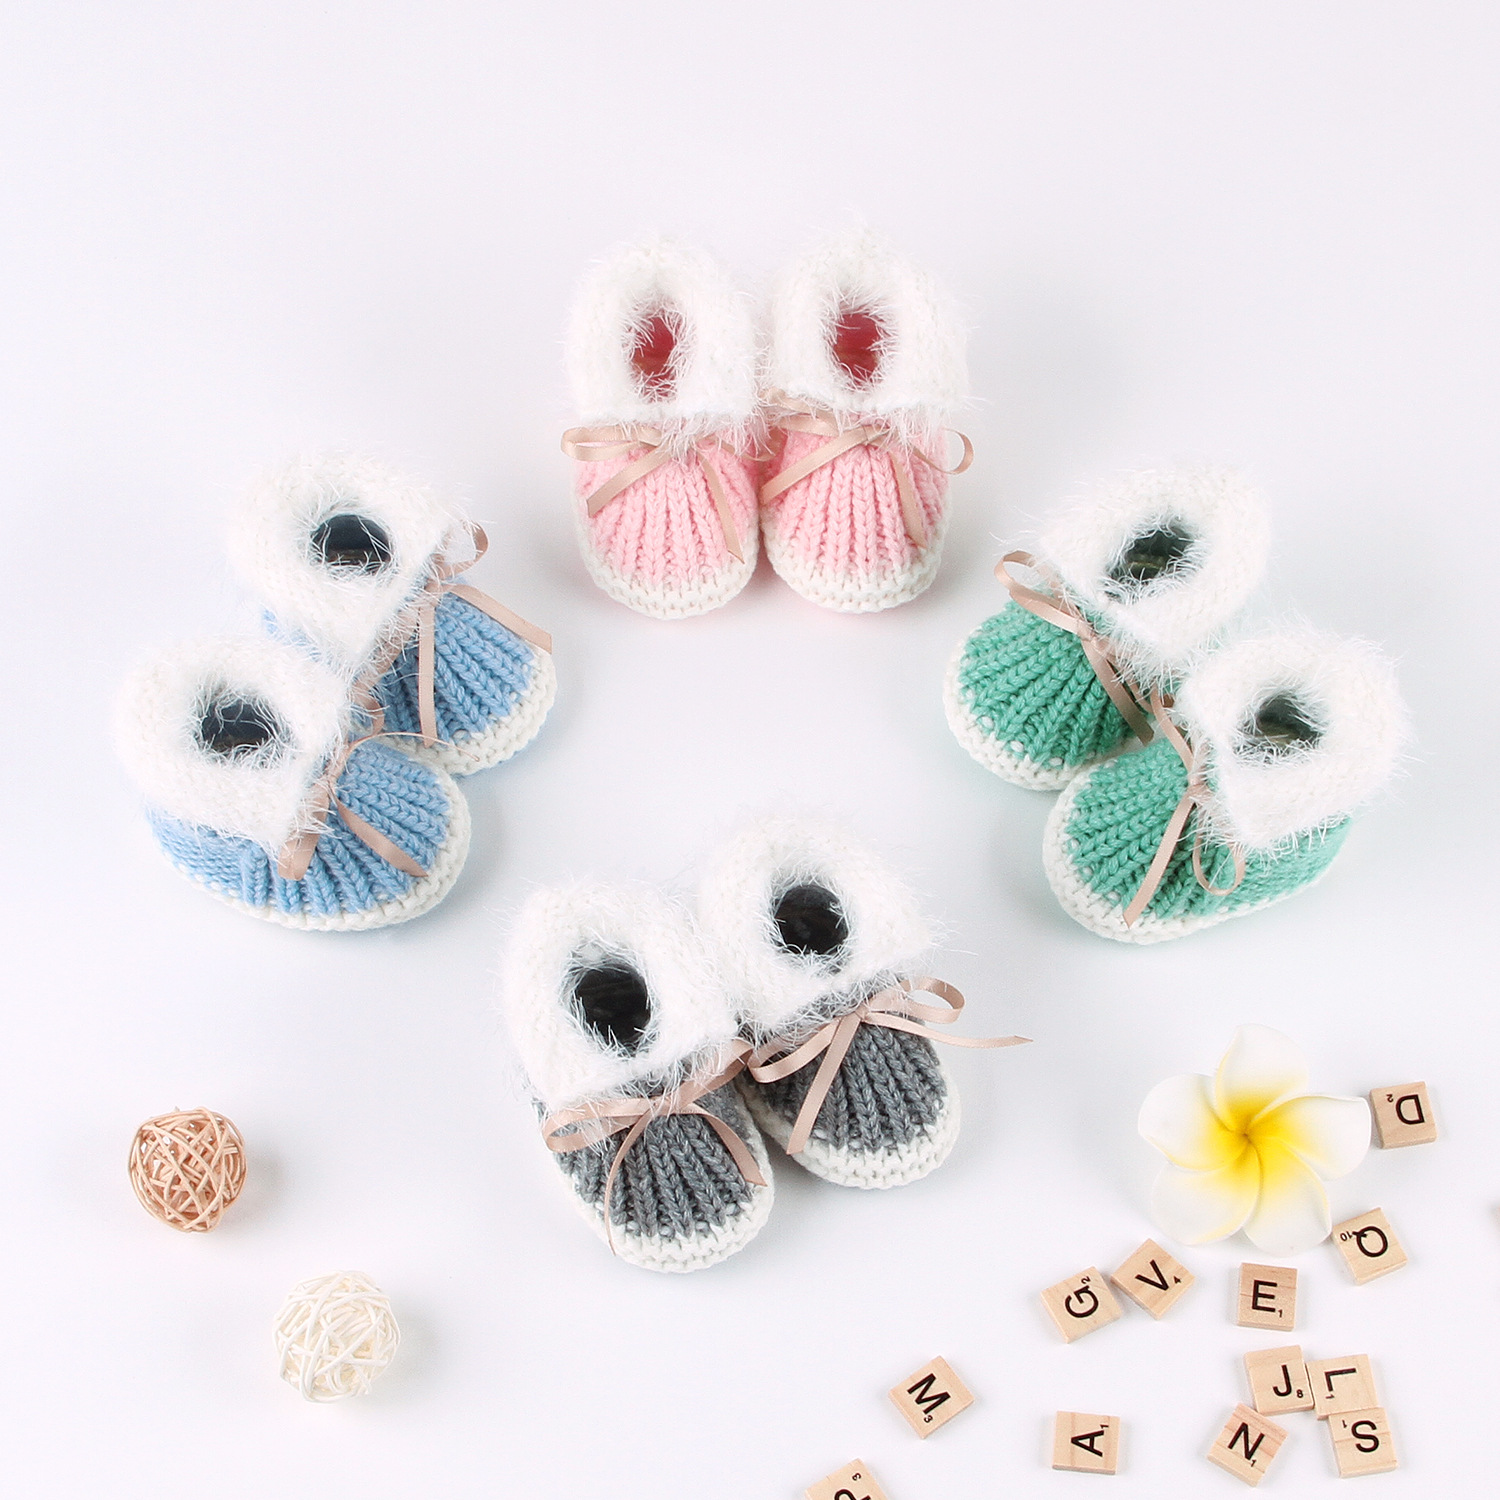 Baby Shoes Infants Crochet Knit Fleece Warm Boots Toddler Girl Boy Wool Snow Crib Shoes Winter Booties